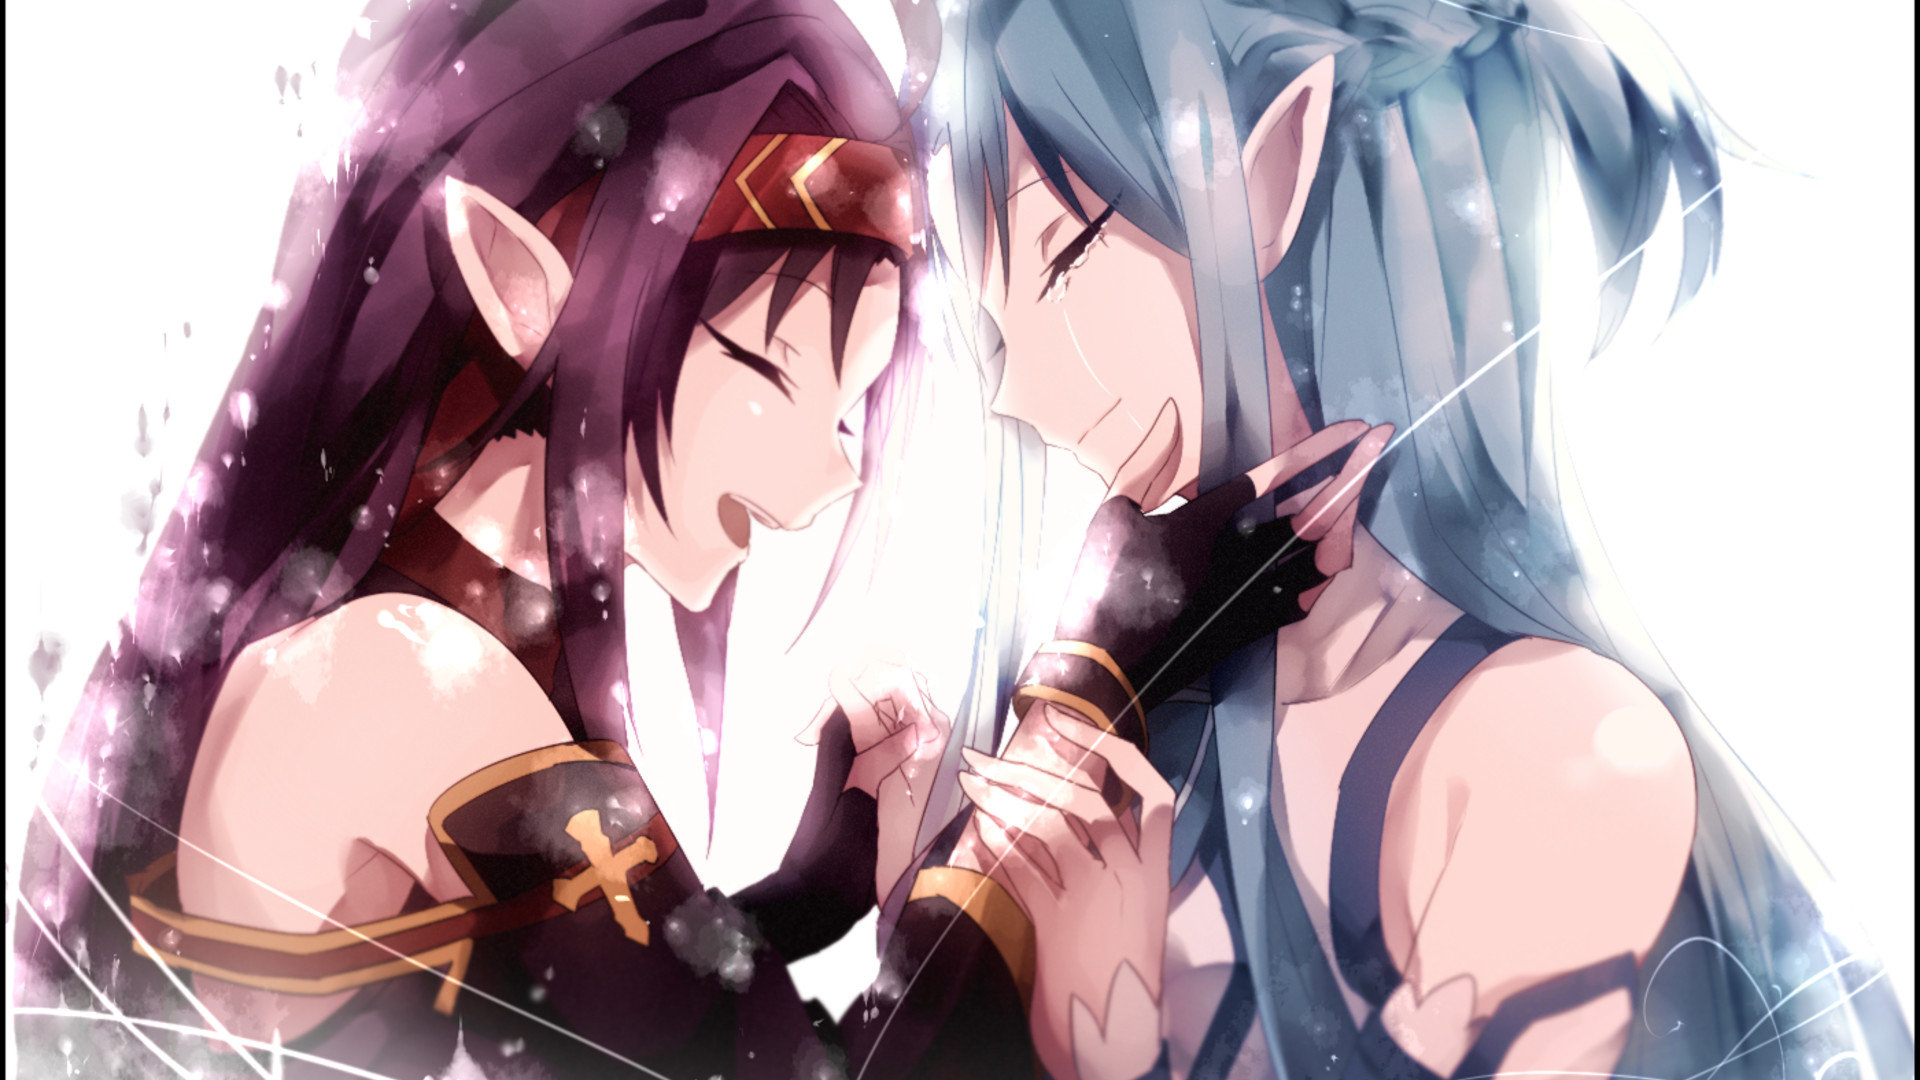 Best Sword Art Online 2 (II) wallpaper ID:112343 for High Resolution full hd computer